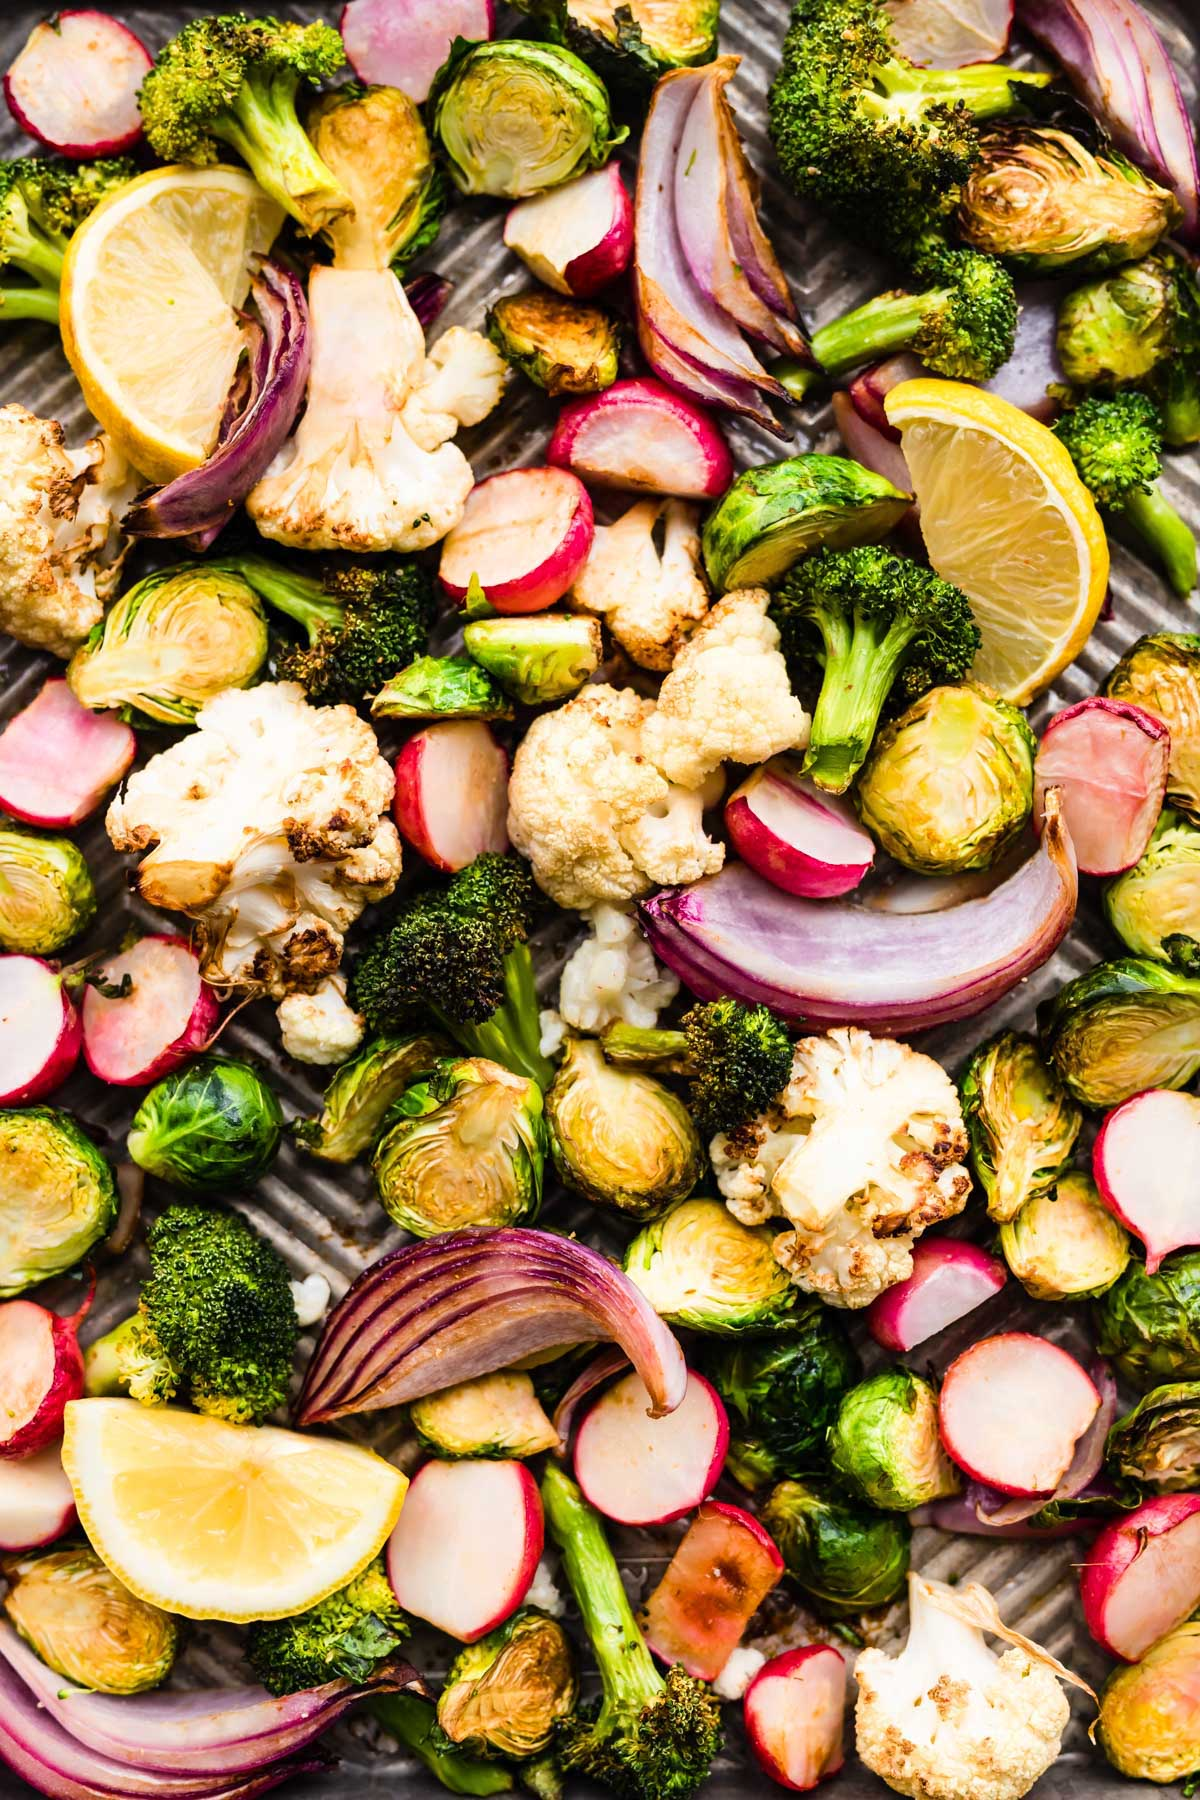 close up image of air fryer veggies (broccoli, cauliflower, radishes, Brussels sprouts and red onion